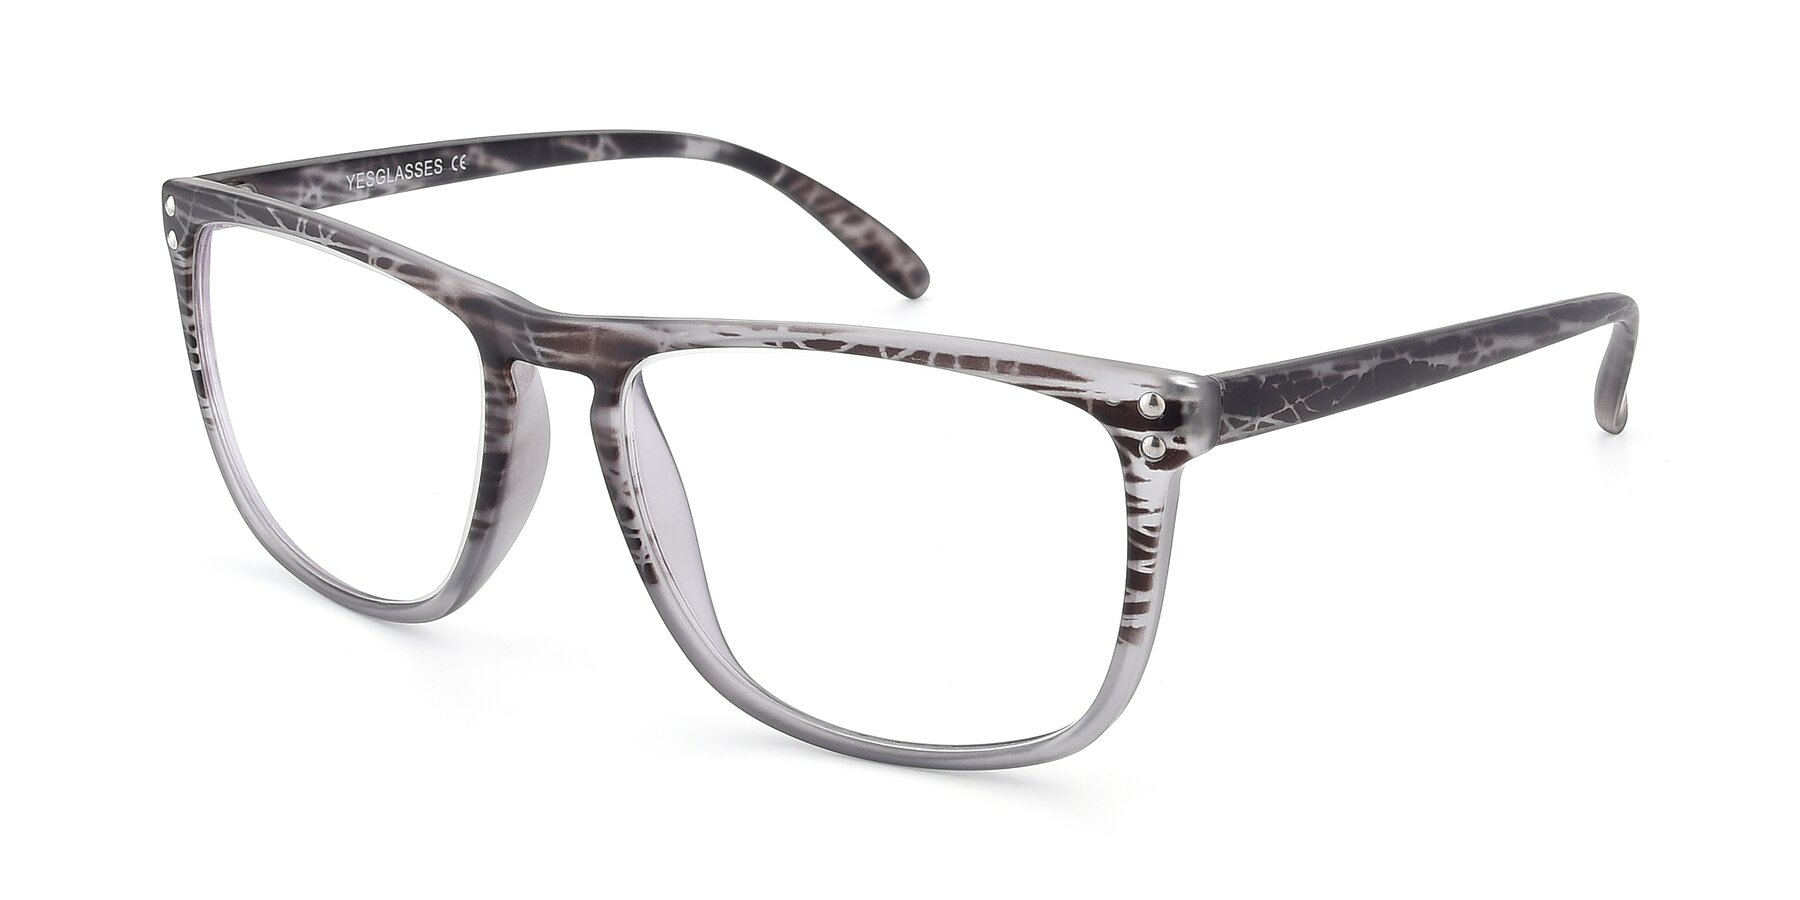 Angle of SSR411 in Translucent Floral Grey with Clear Eyeglass Lenses